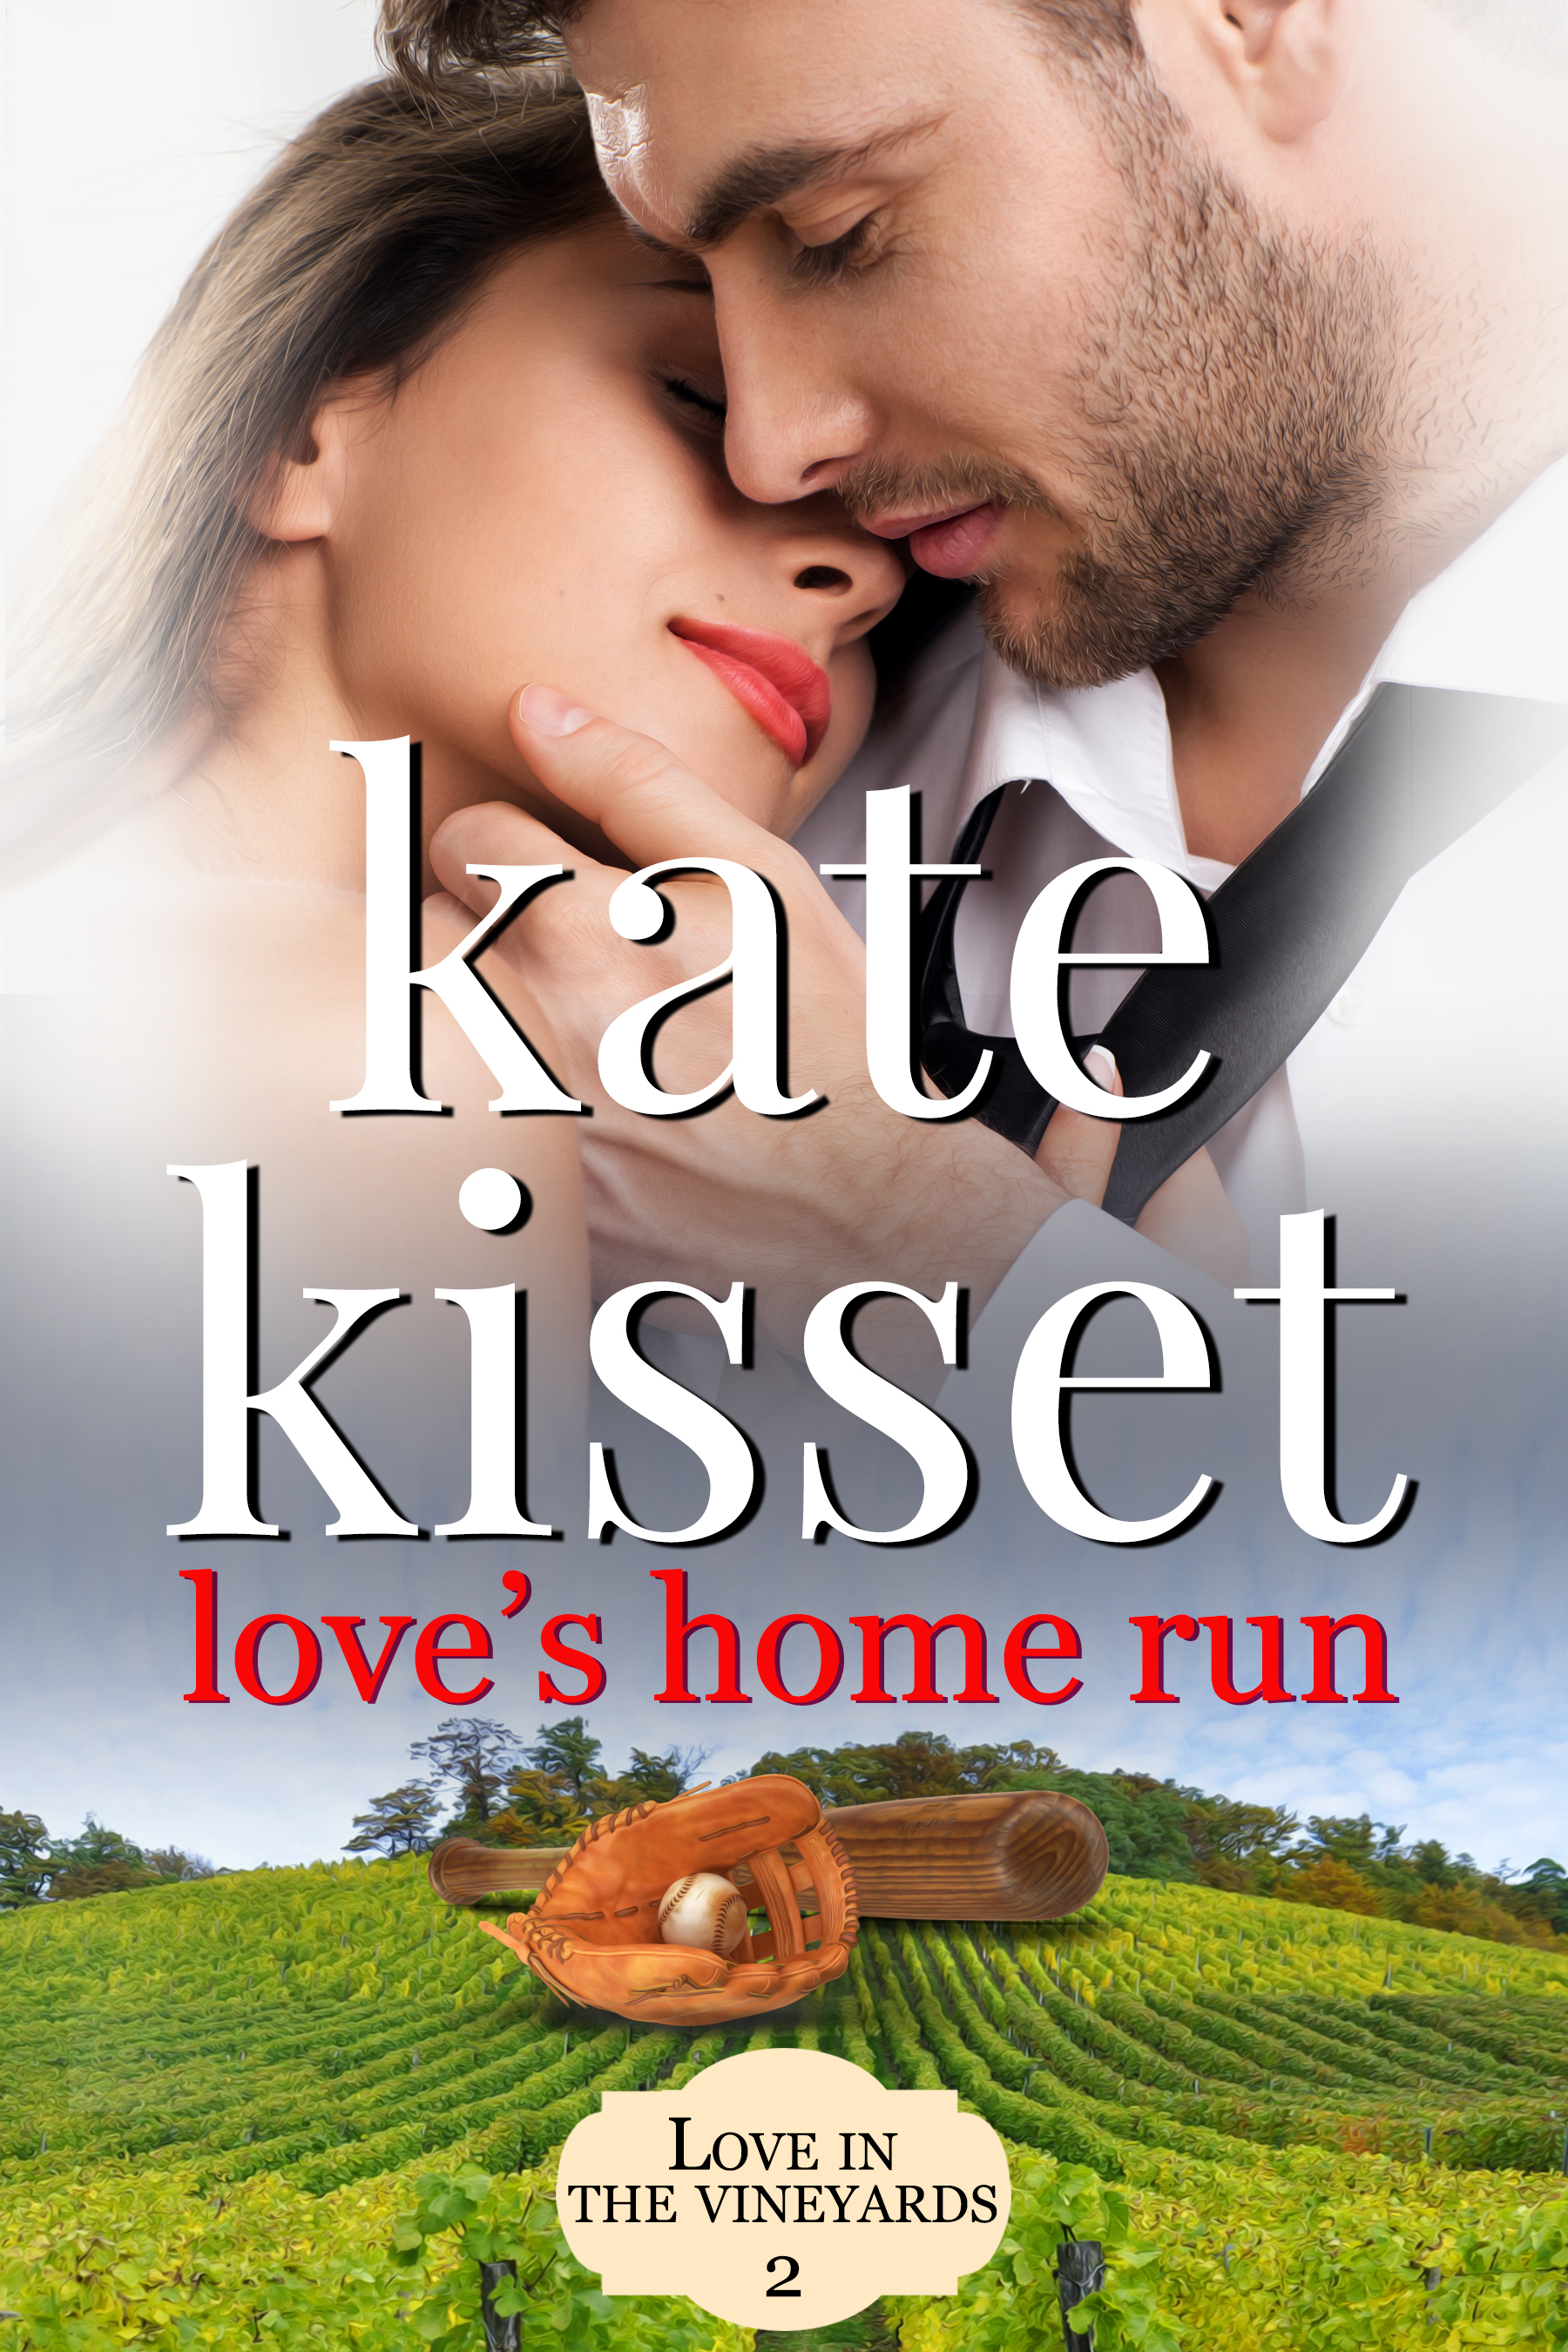 Kate Kisset's Love's Home Run